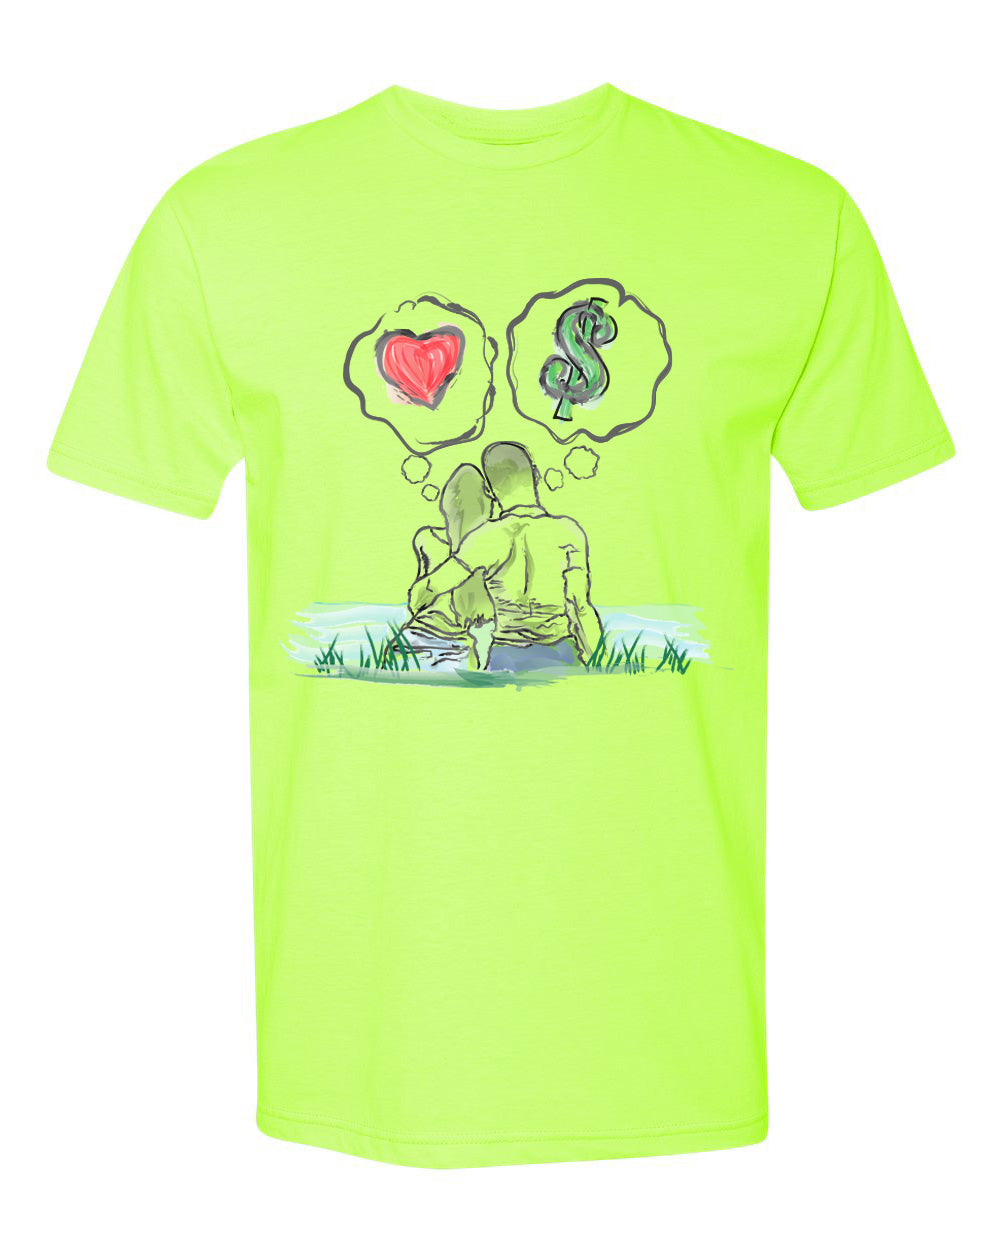 Guy Benson Collection Love Vs Money T-Shirt -Neon Green